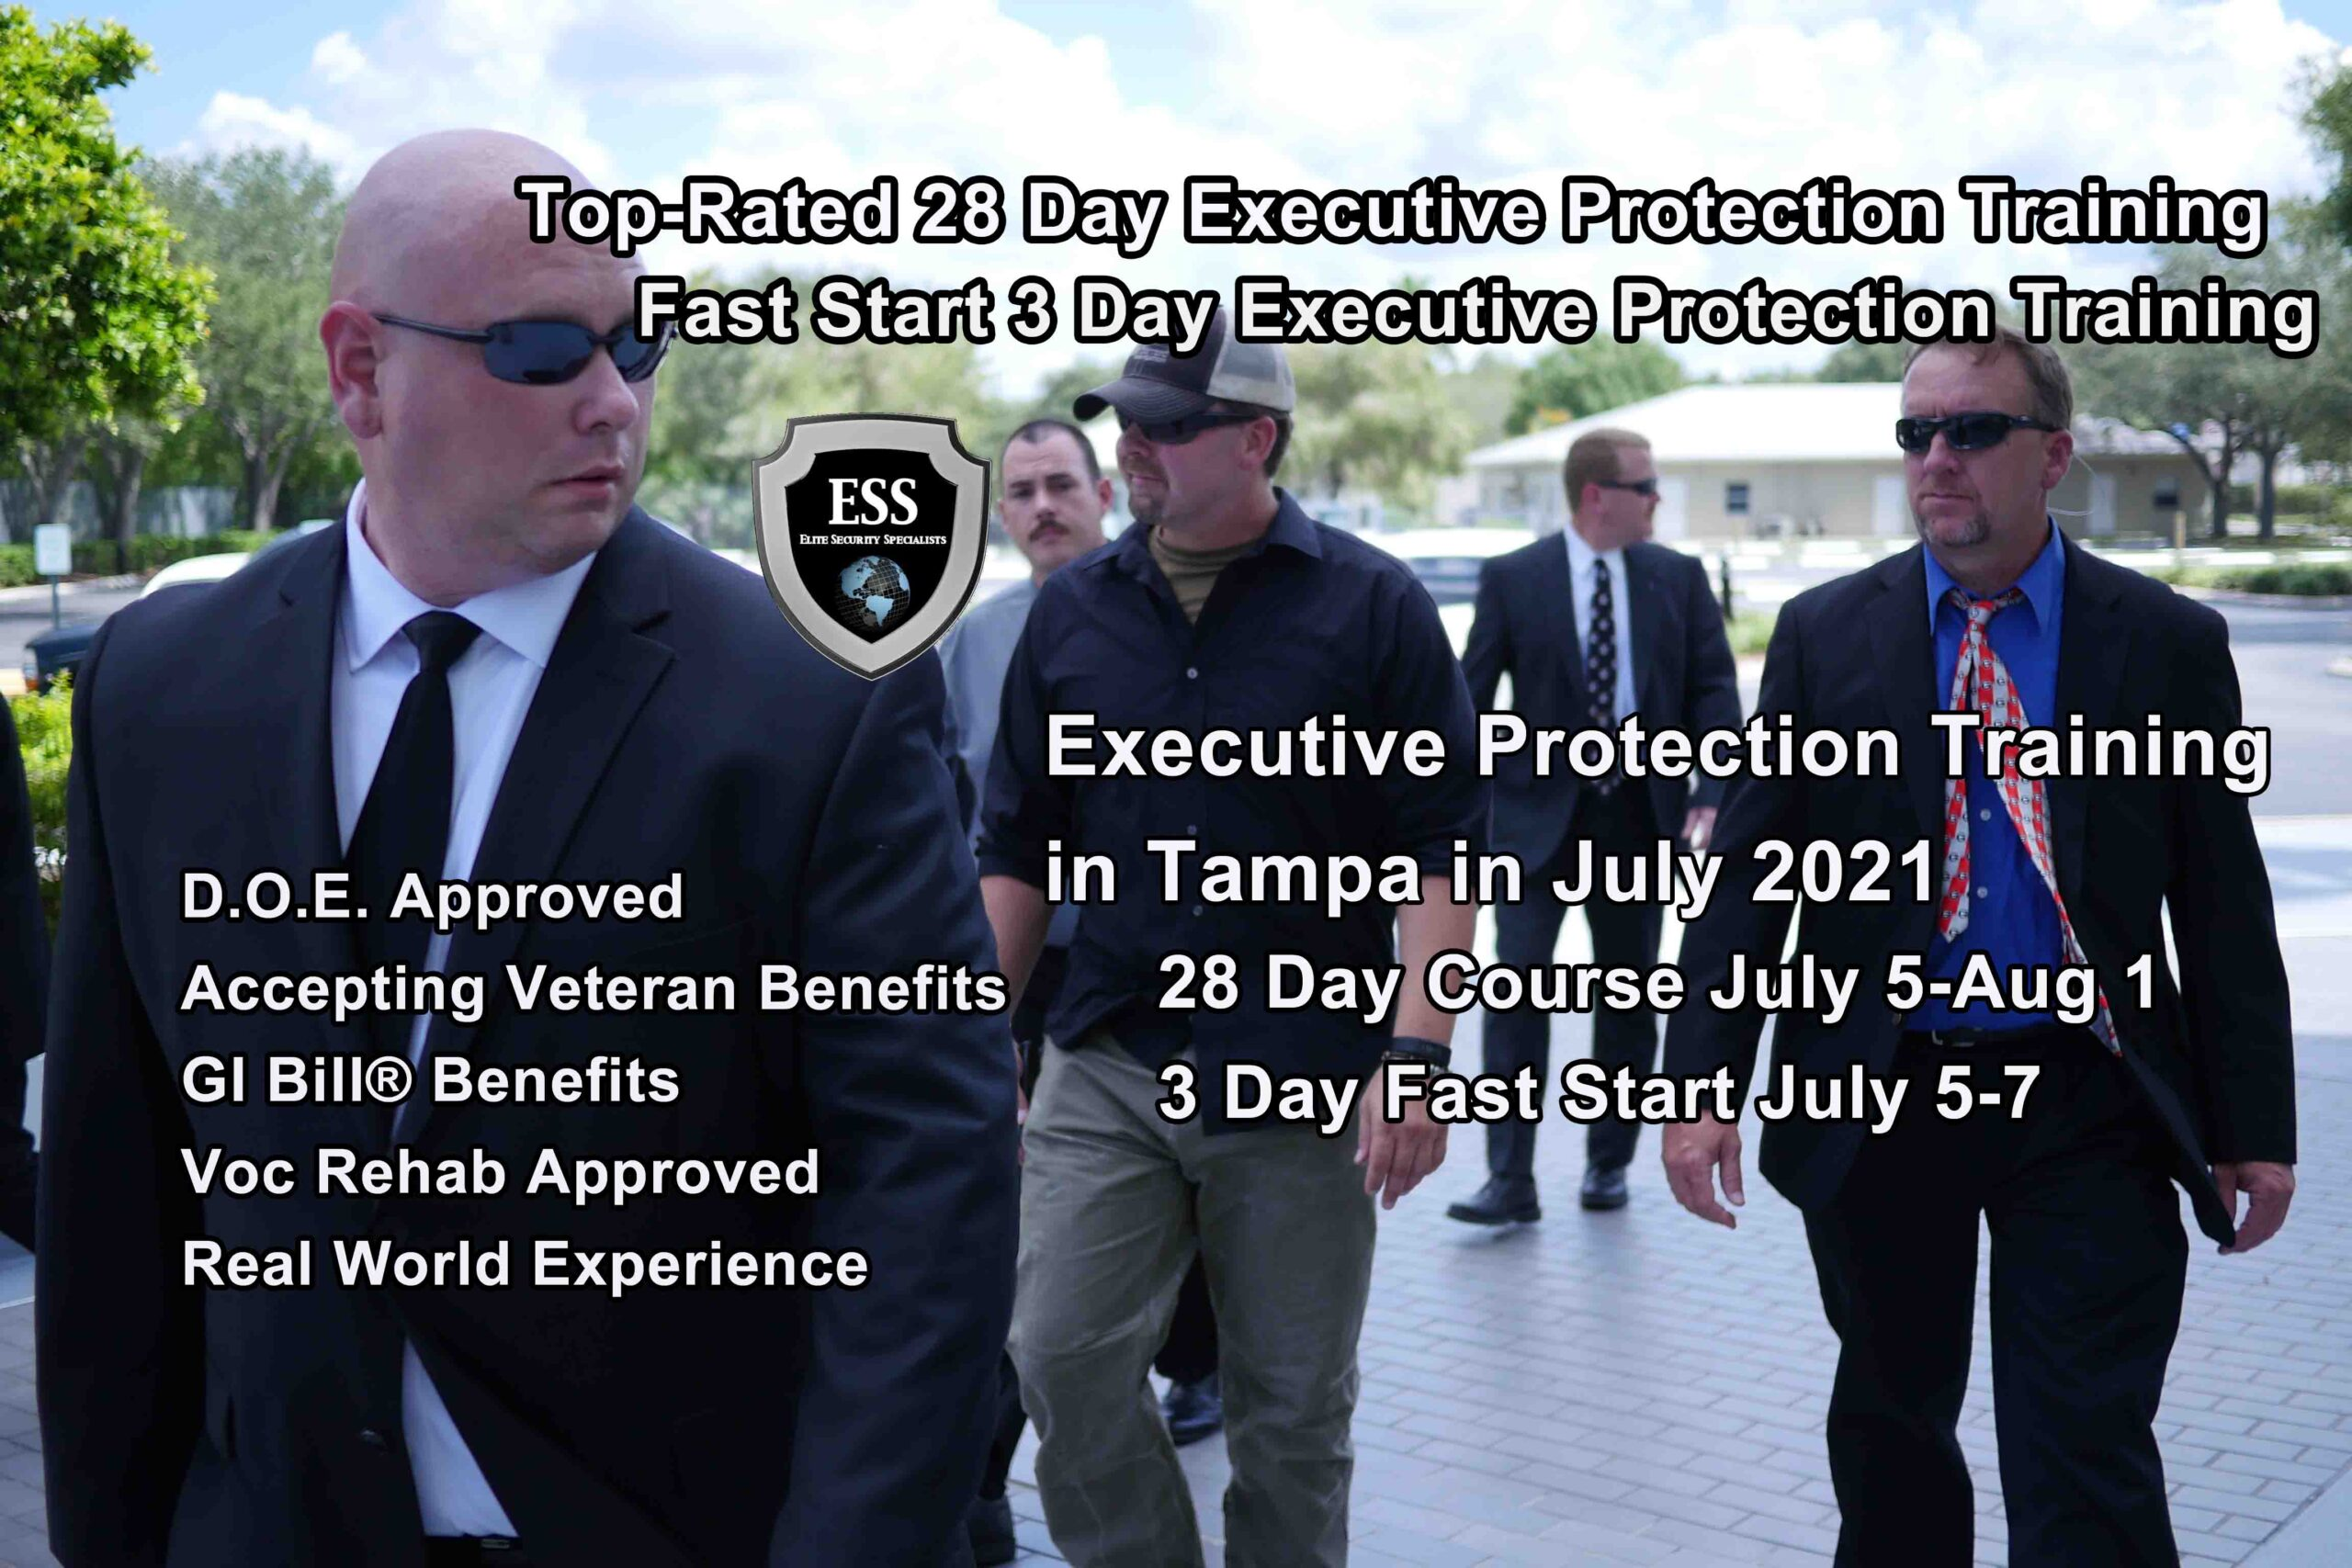 Executive Protection Training - Tampa July 2